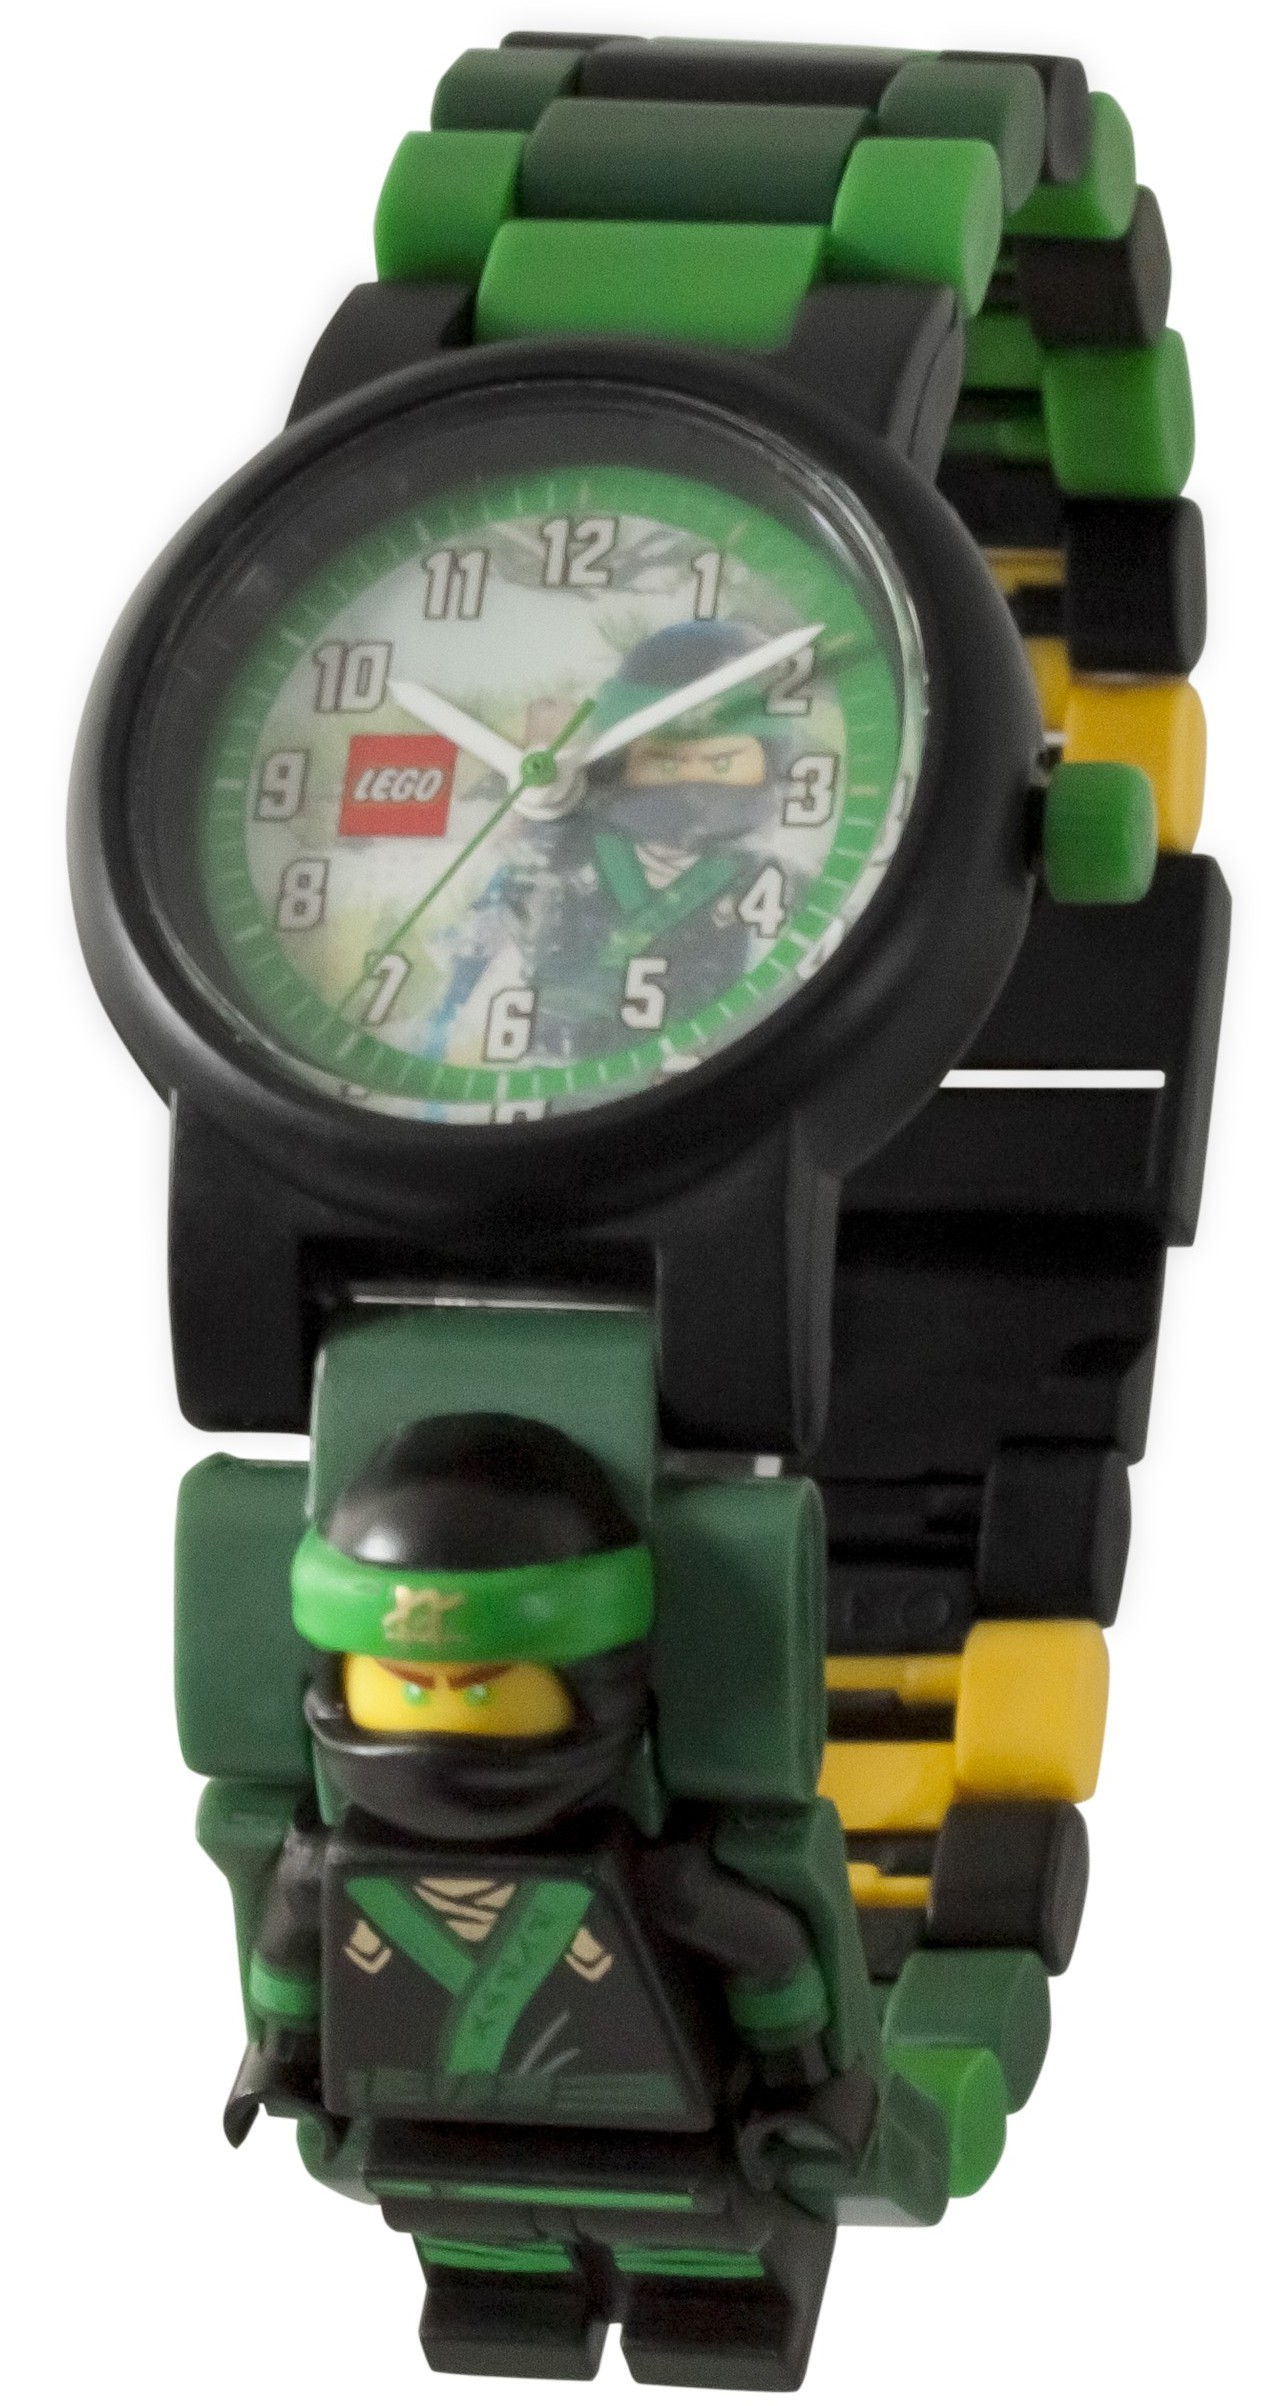 LEGO Ninjago - Lloyd Minifigure Link Watch - Heromic 23c8725d3b71b